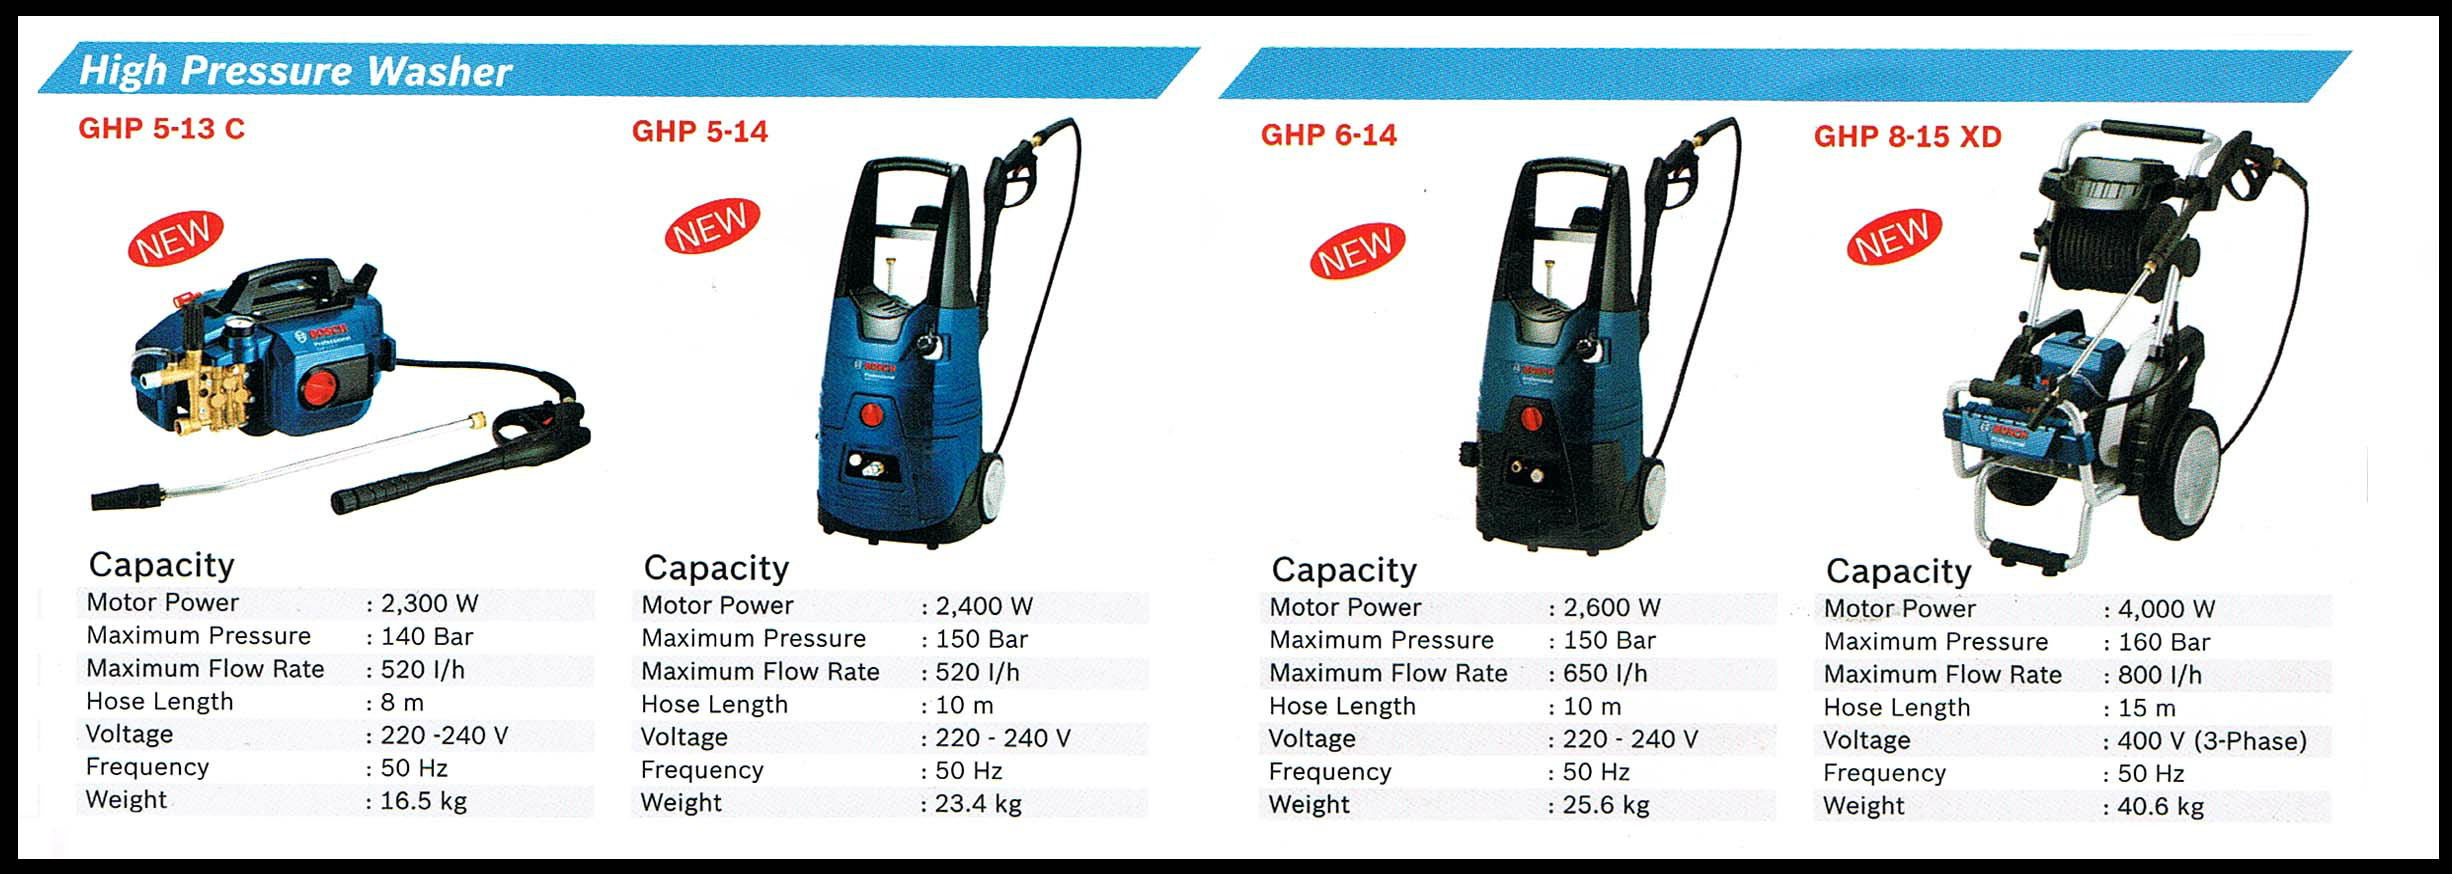 Bosch High Pressure Washer ★ Bosch High Pressure Cleaner